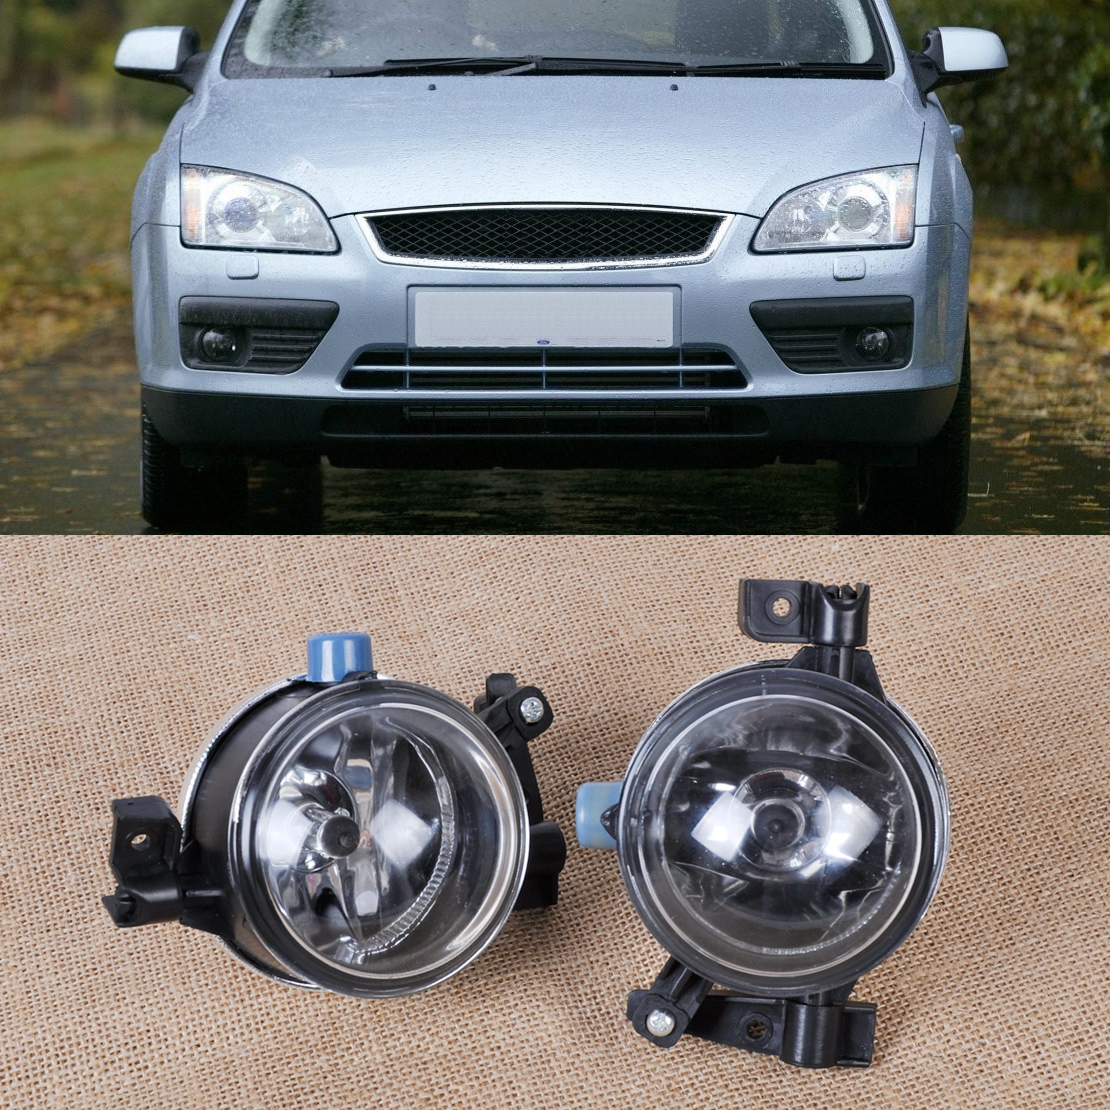 beler 2pcs Black Left + Right Side Fog Lights Lamp 55W 12V 3M51-15K201-AA 3M51-15K202-AA for Ford Focus 2005 2006 2007